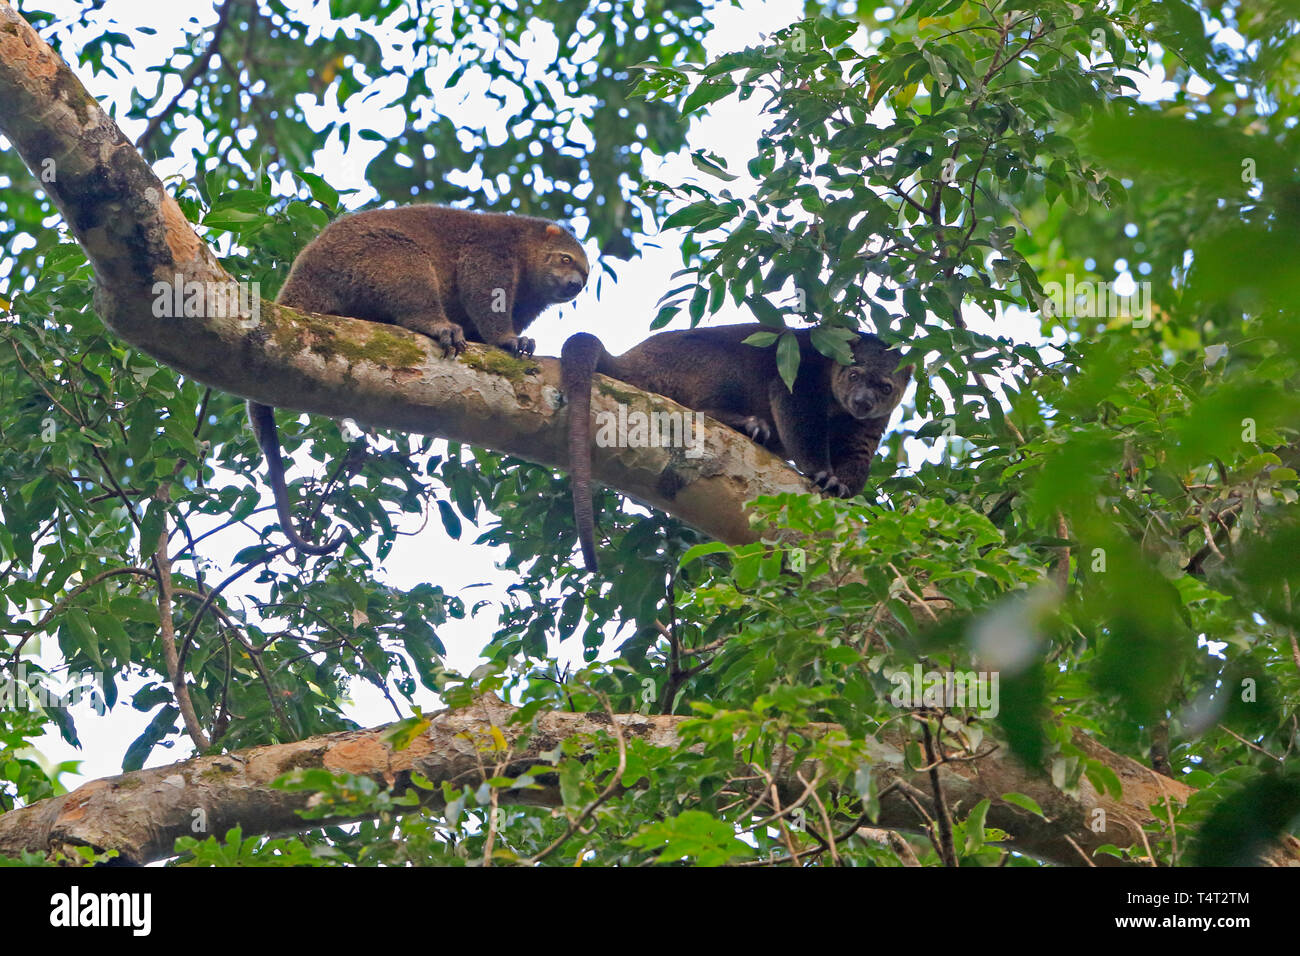 Two Bear Cuscuses in a tree in Sulawesi Indonesia - Stock Image